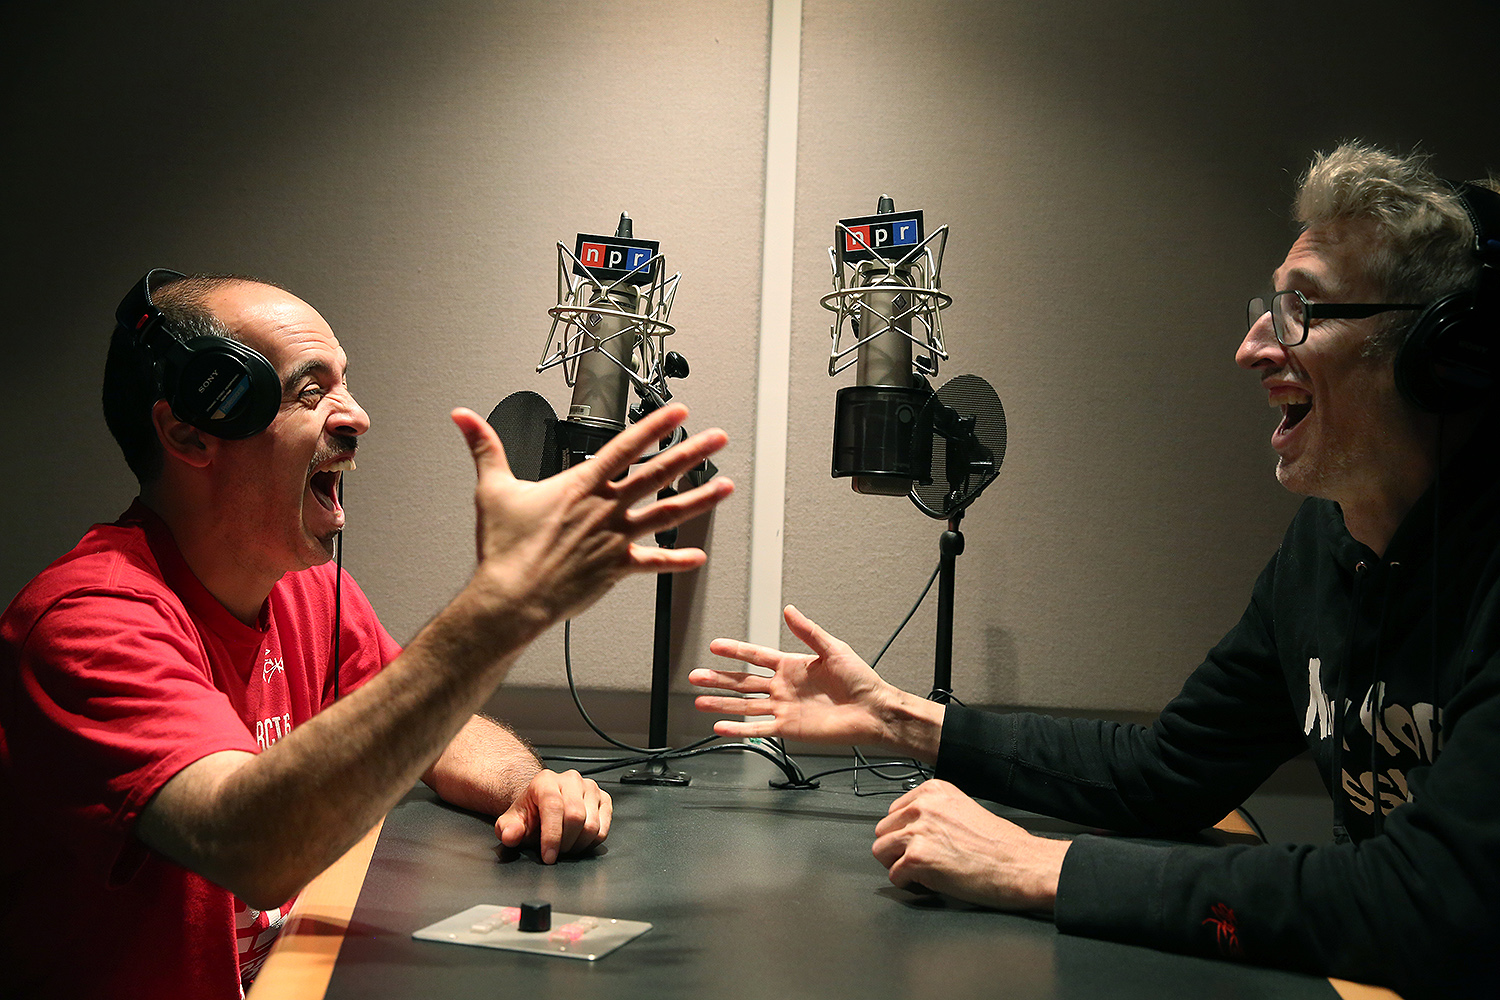 Bobbito Garcia and DJ Stretch Armstrong are in animated discussion and laughter across a studio table on the air at NPR.